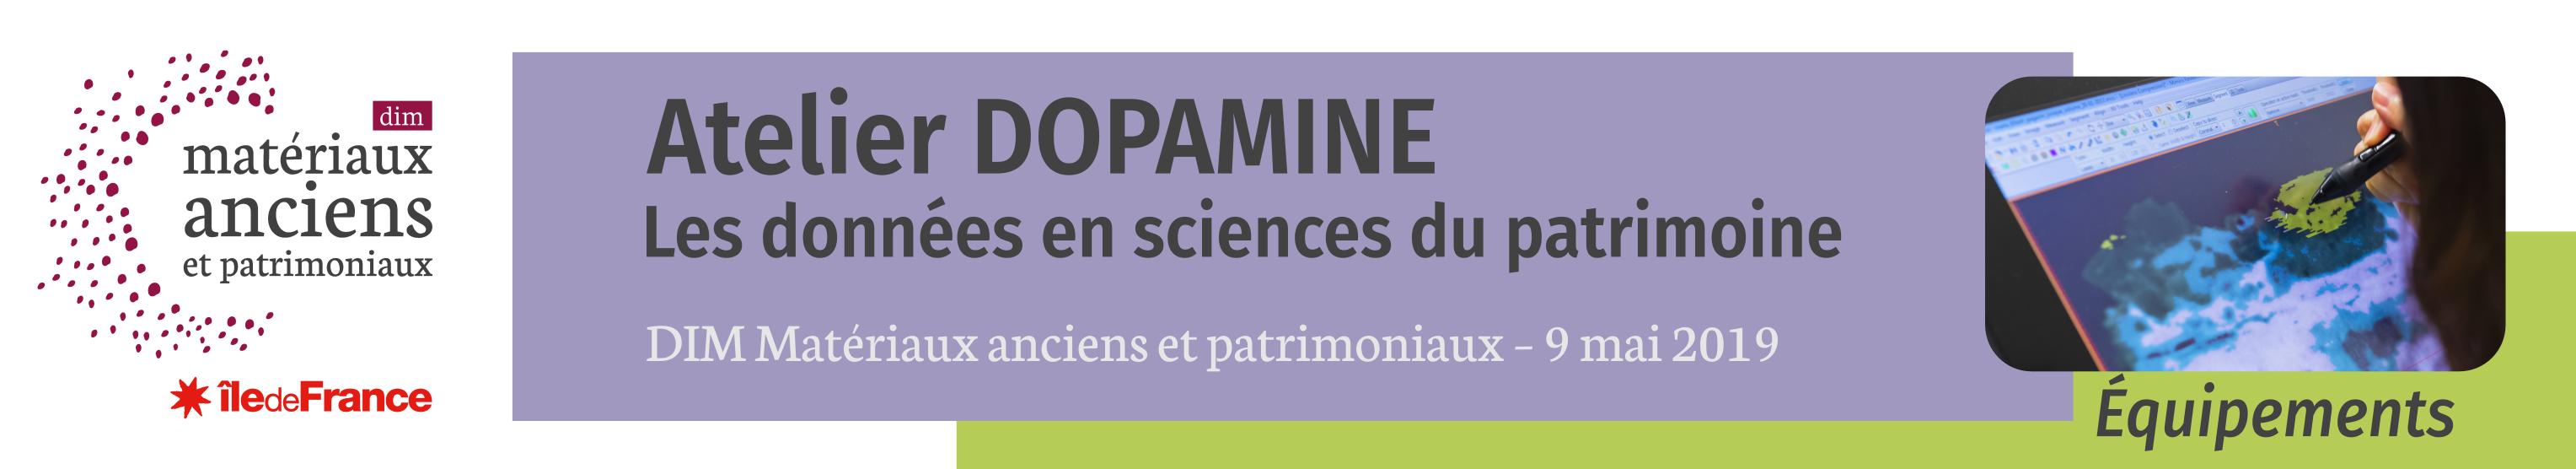 mailing_dopamine2_978x178_300.png